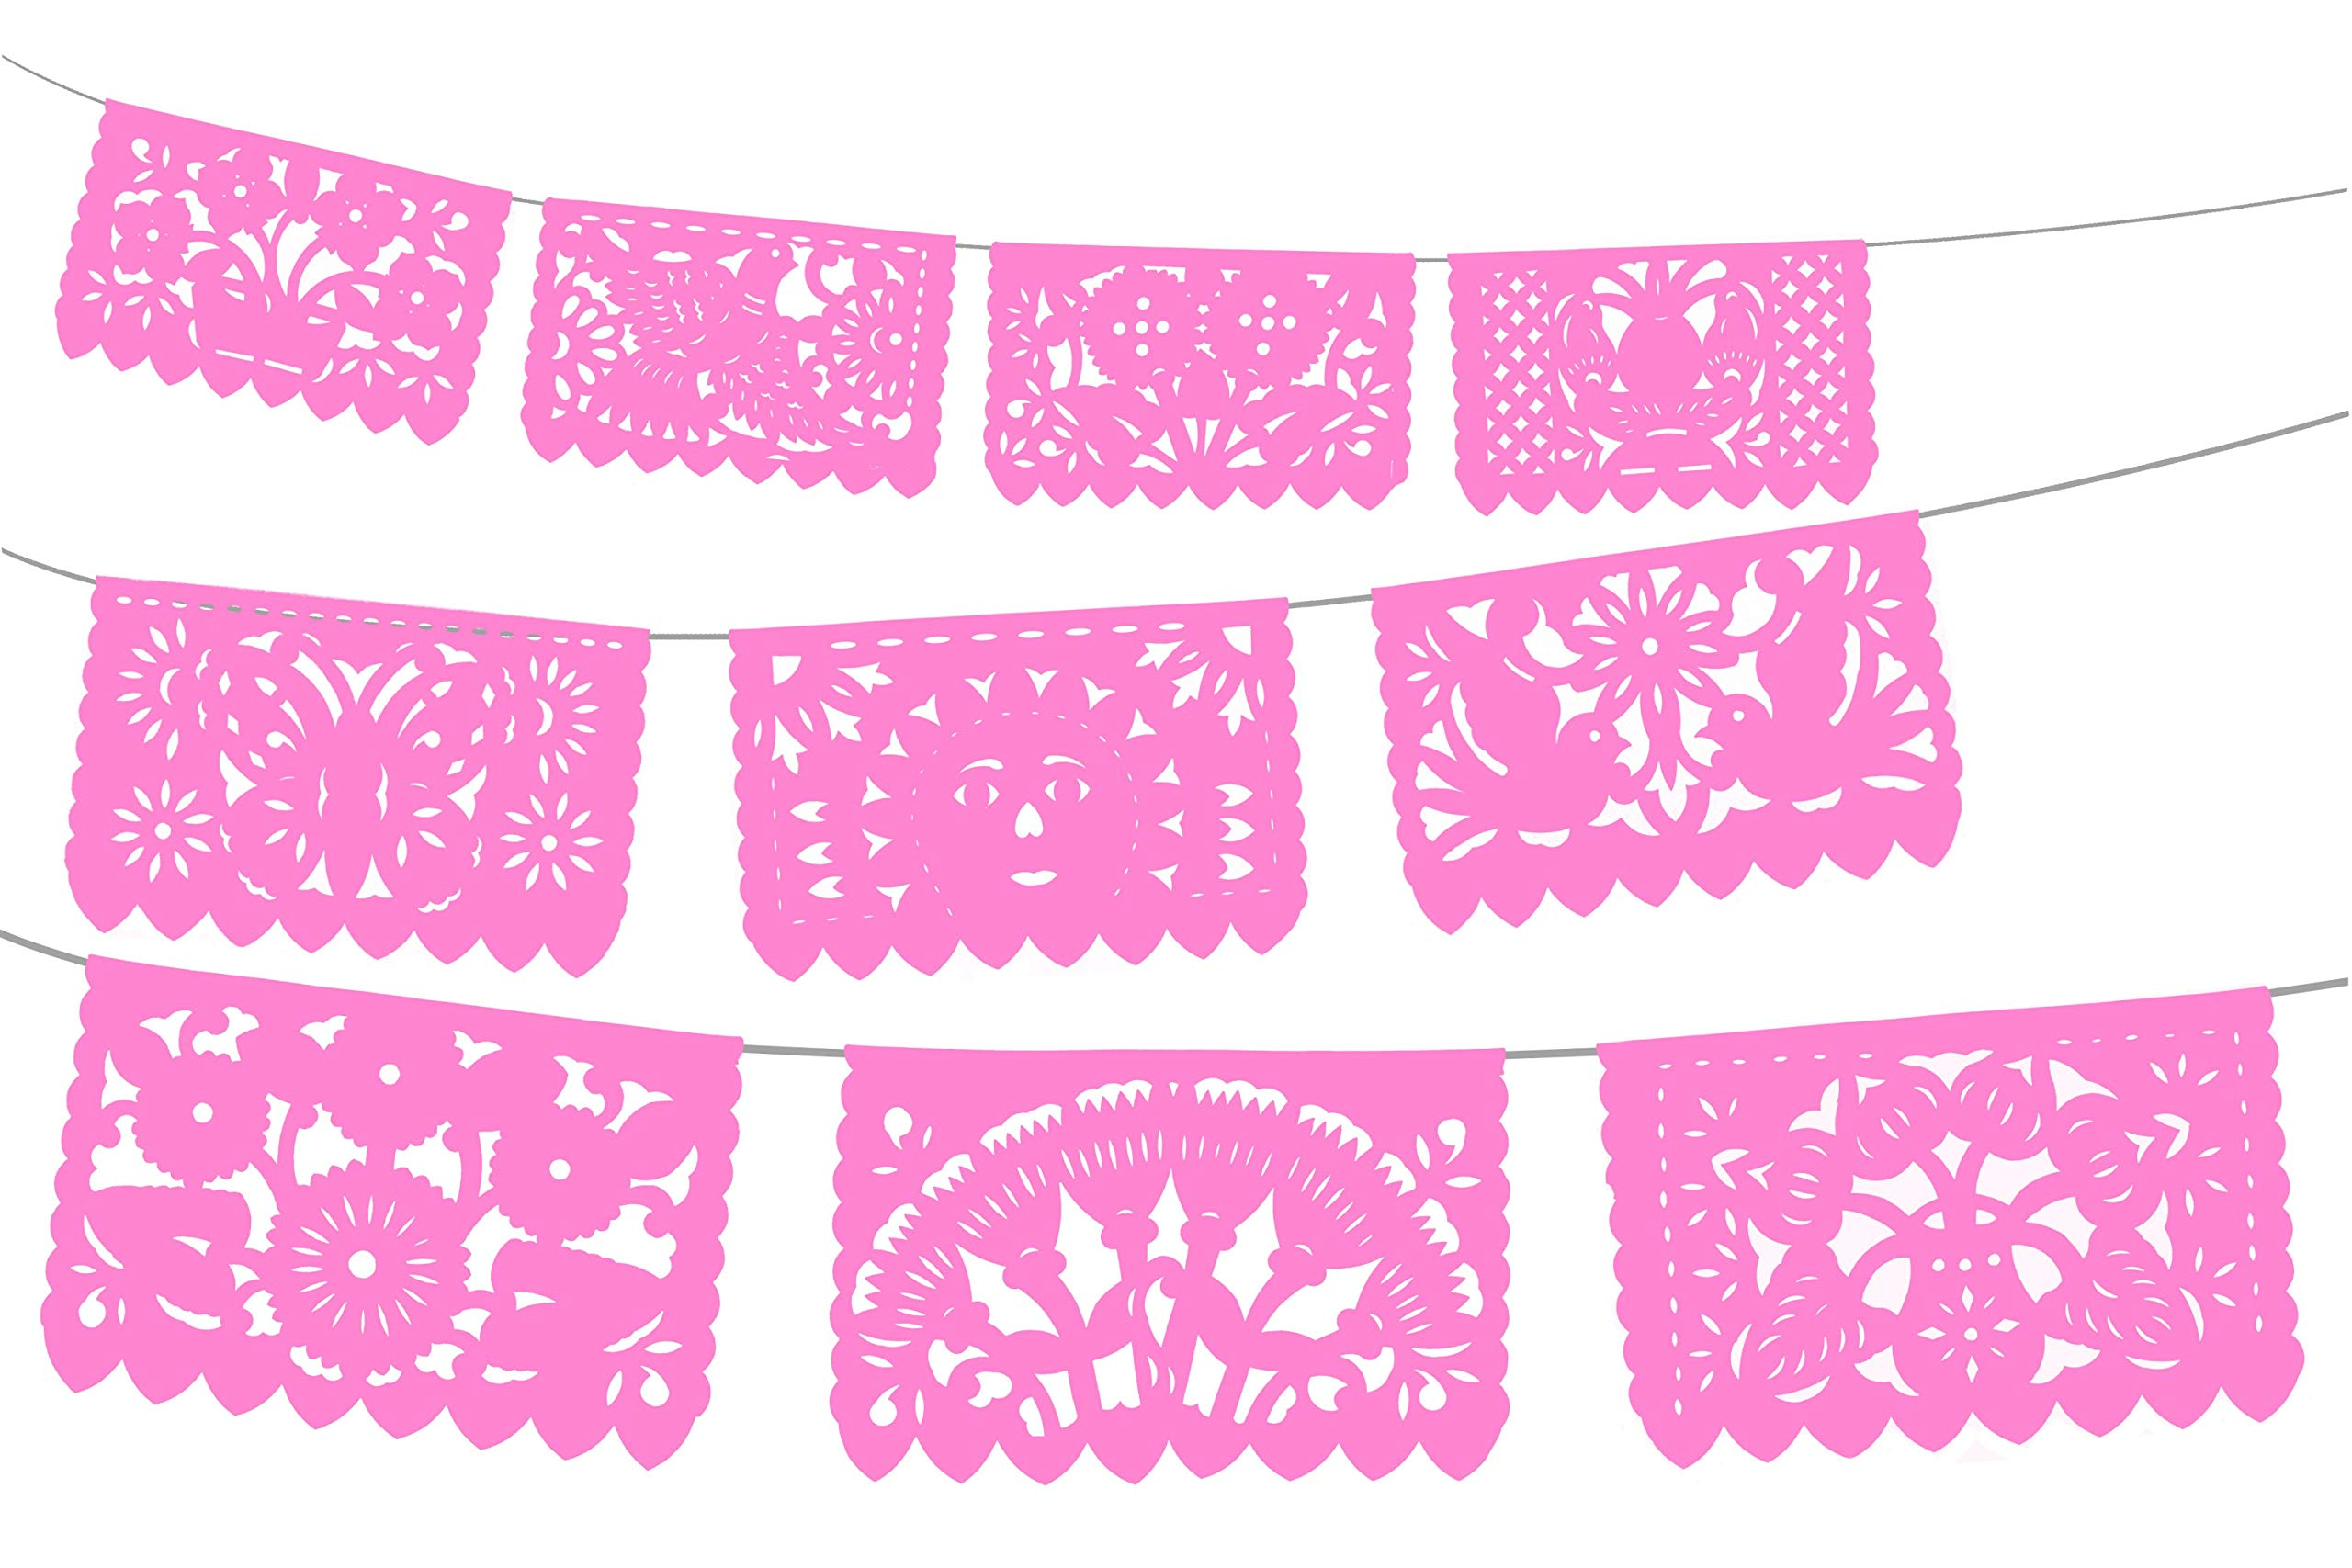 Mexican Party Decorations, Papel Picado Banner, Over 60 feet Long, Light Pink Tissue Paper Garland, Mexican Decor, Weddings, Quinceneras, Birthdays, Fiesta Party Supplies, Cinco de Mayo, WS2000